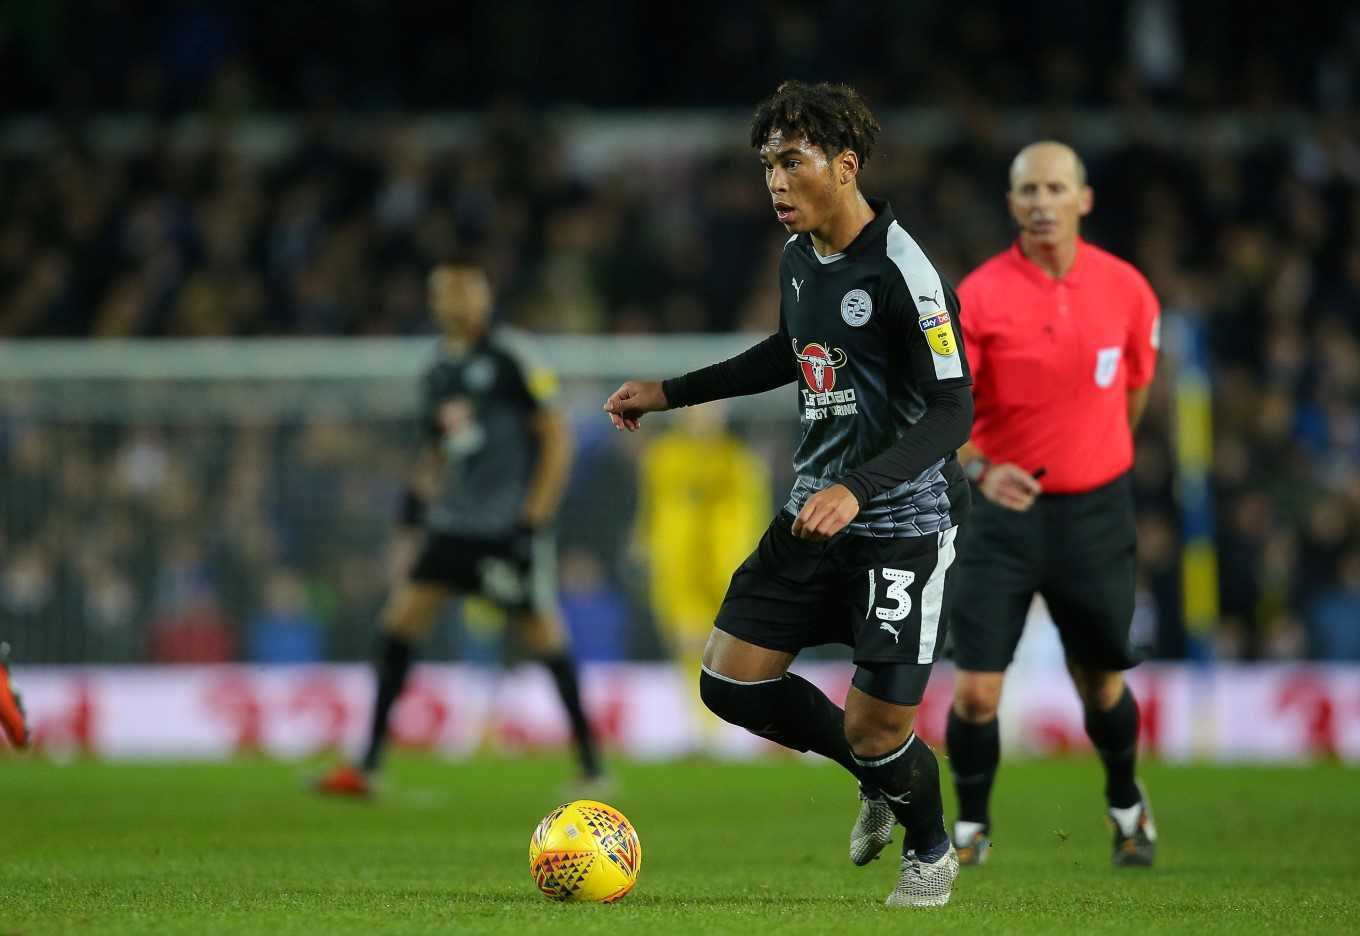 Danny Loader grabbed a hat trick against Manchester United U23s.